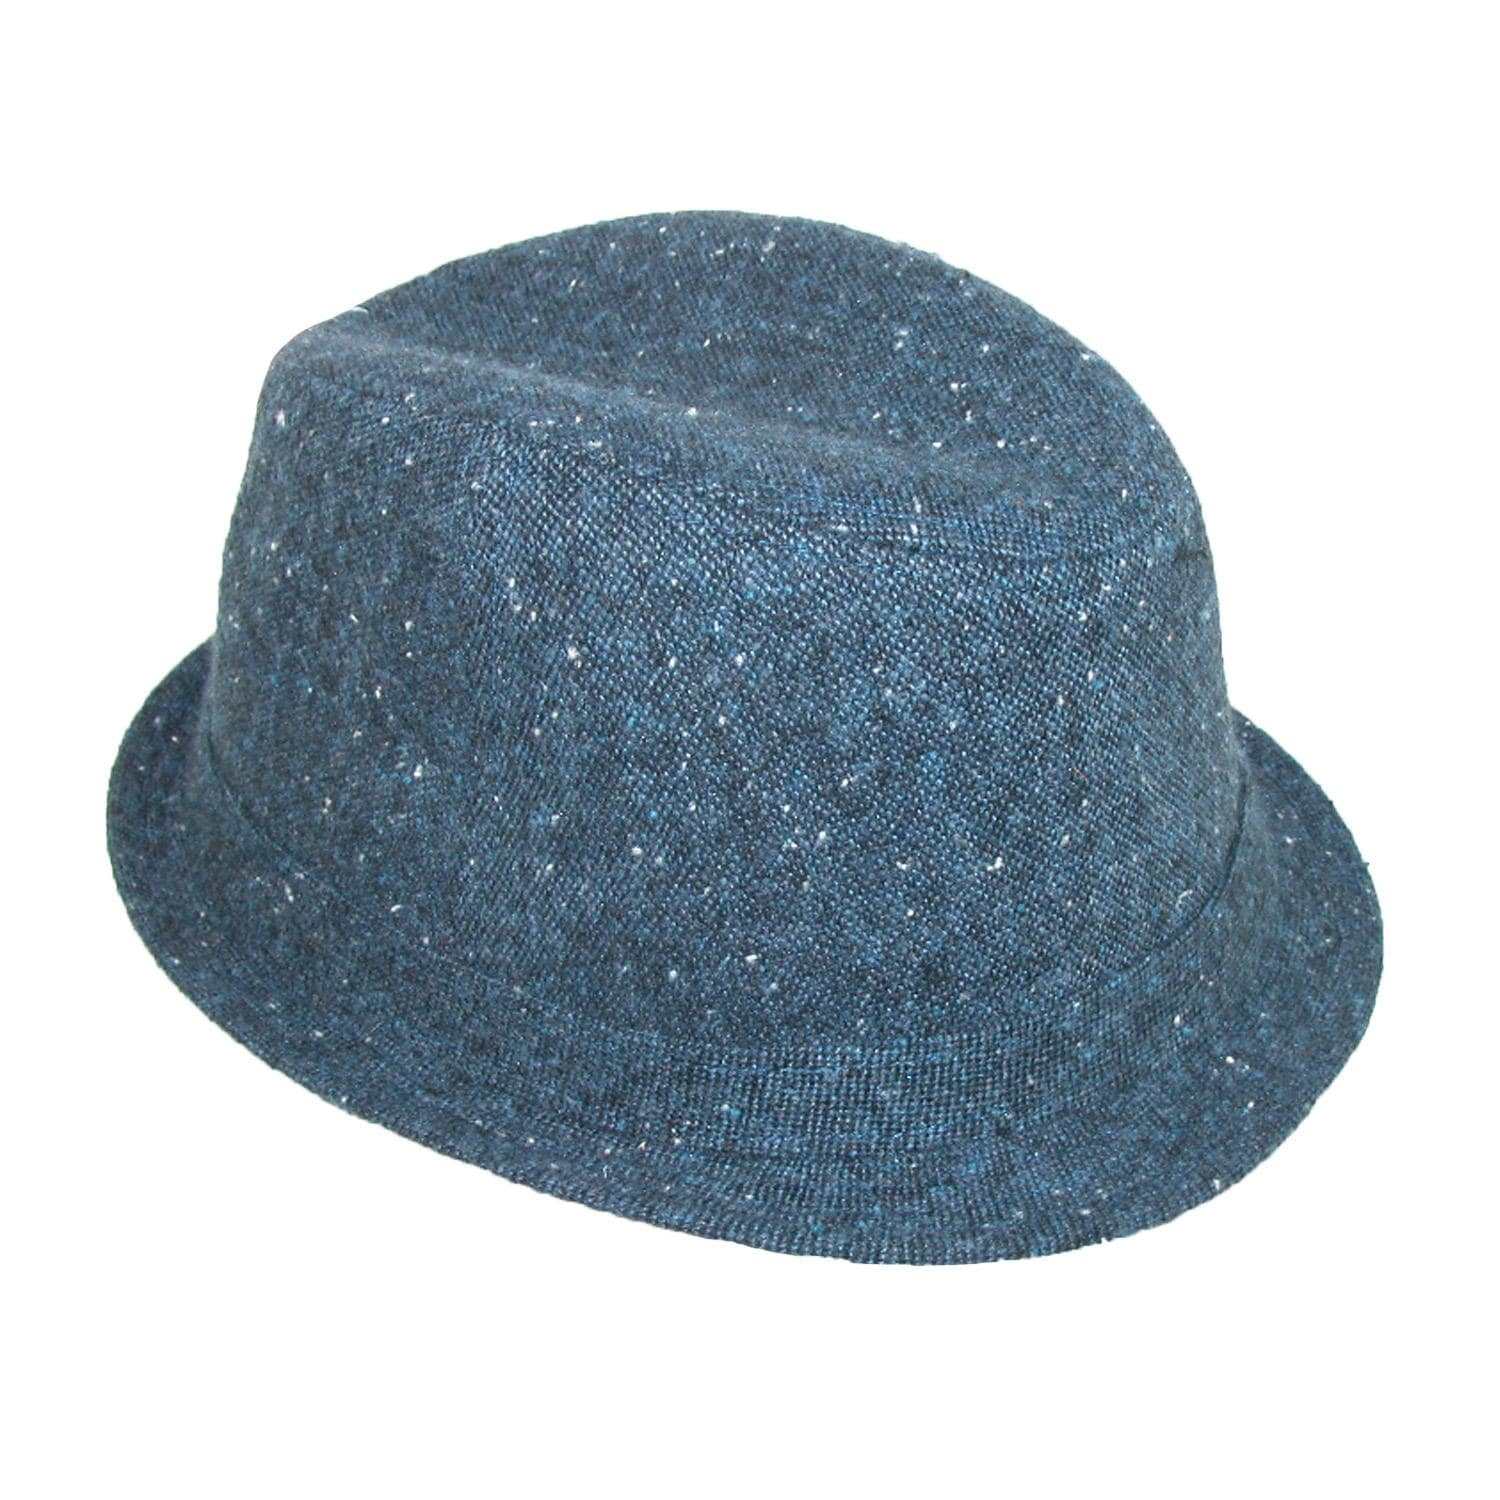 Shop Levis Men s Wool Heathered Upturn Fedora Hat - Free Shipping On Orders  Over  45 - Overstock - 14277781 7ea4887a137